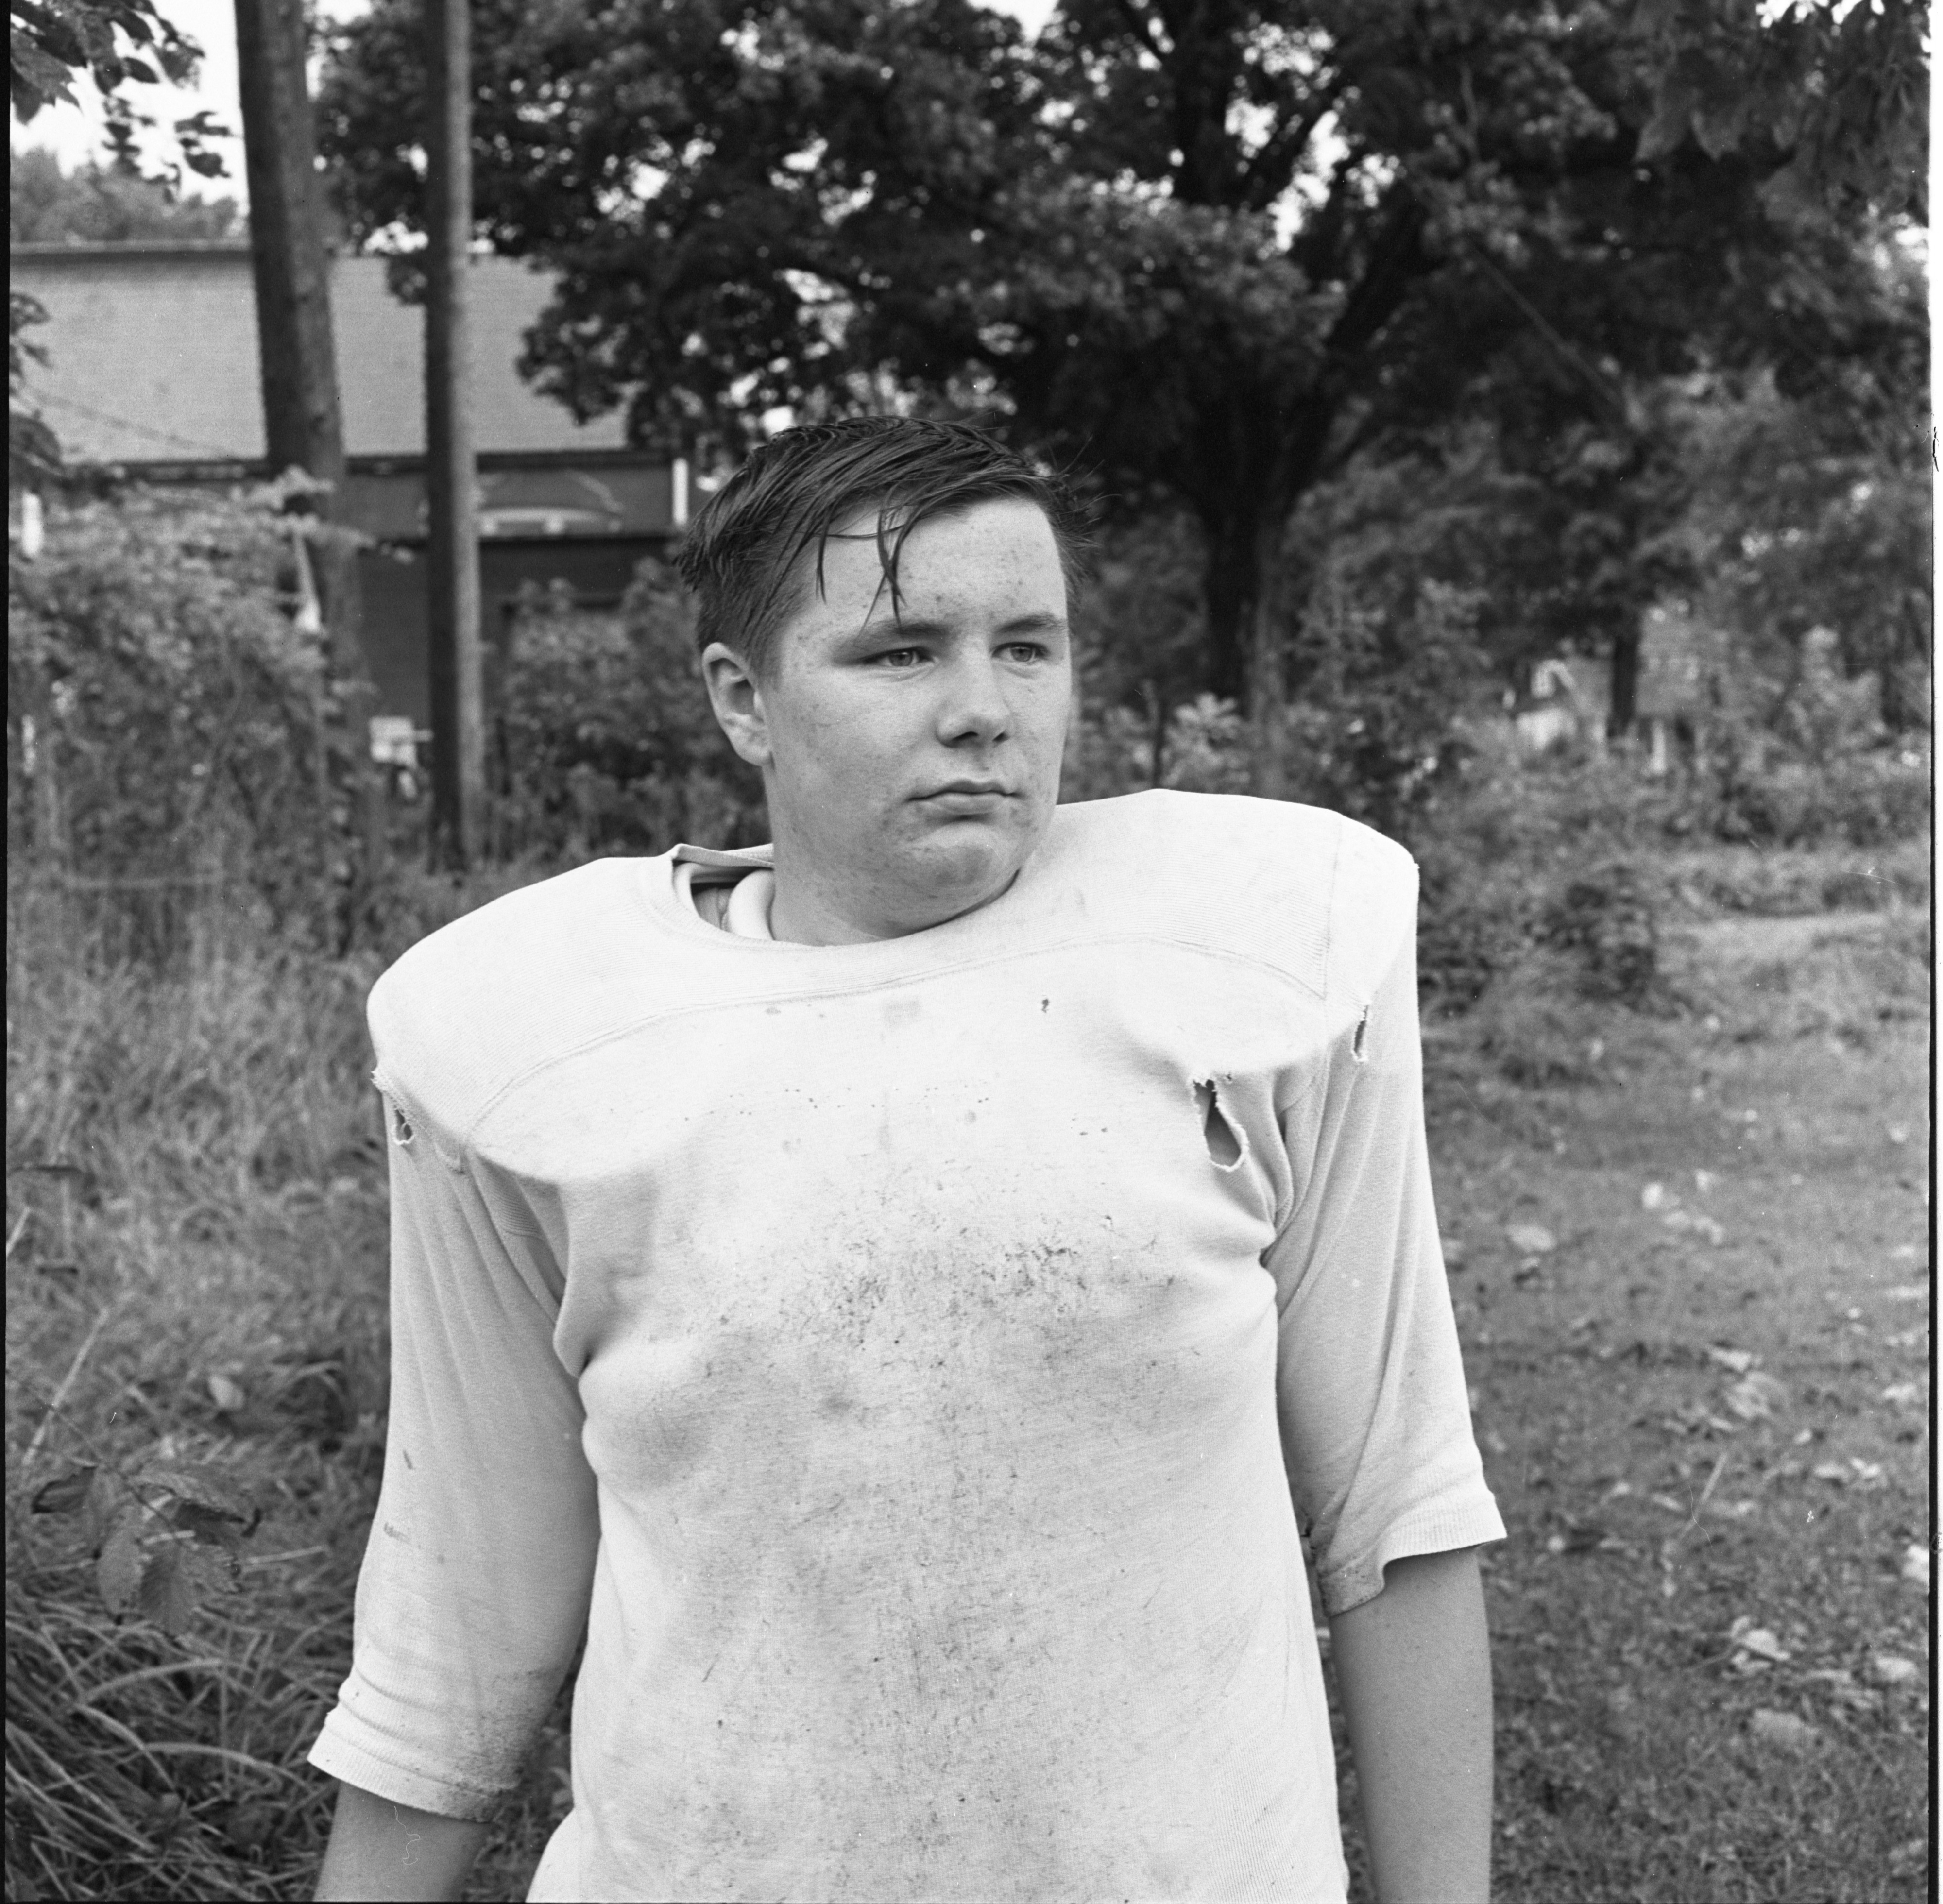 Bob Place - St. Thomas High School Football Team, October 1968 image